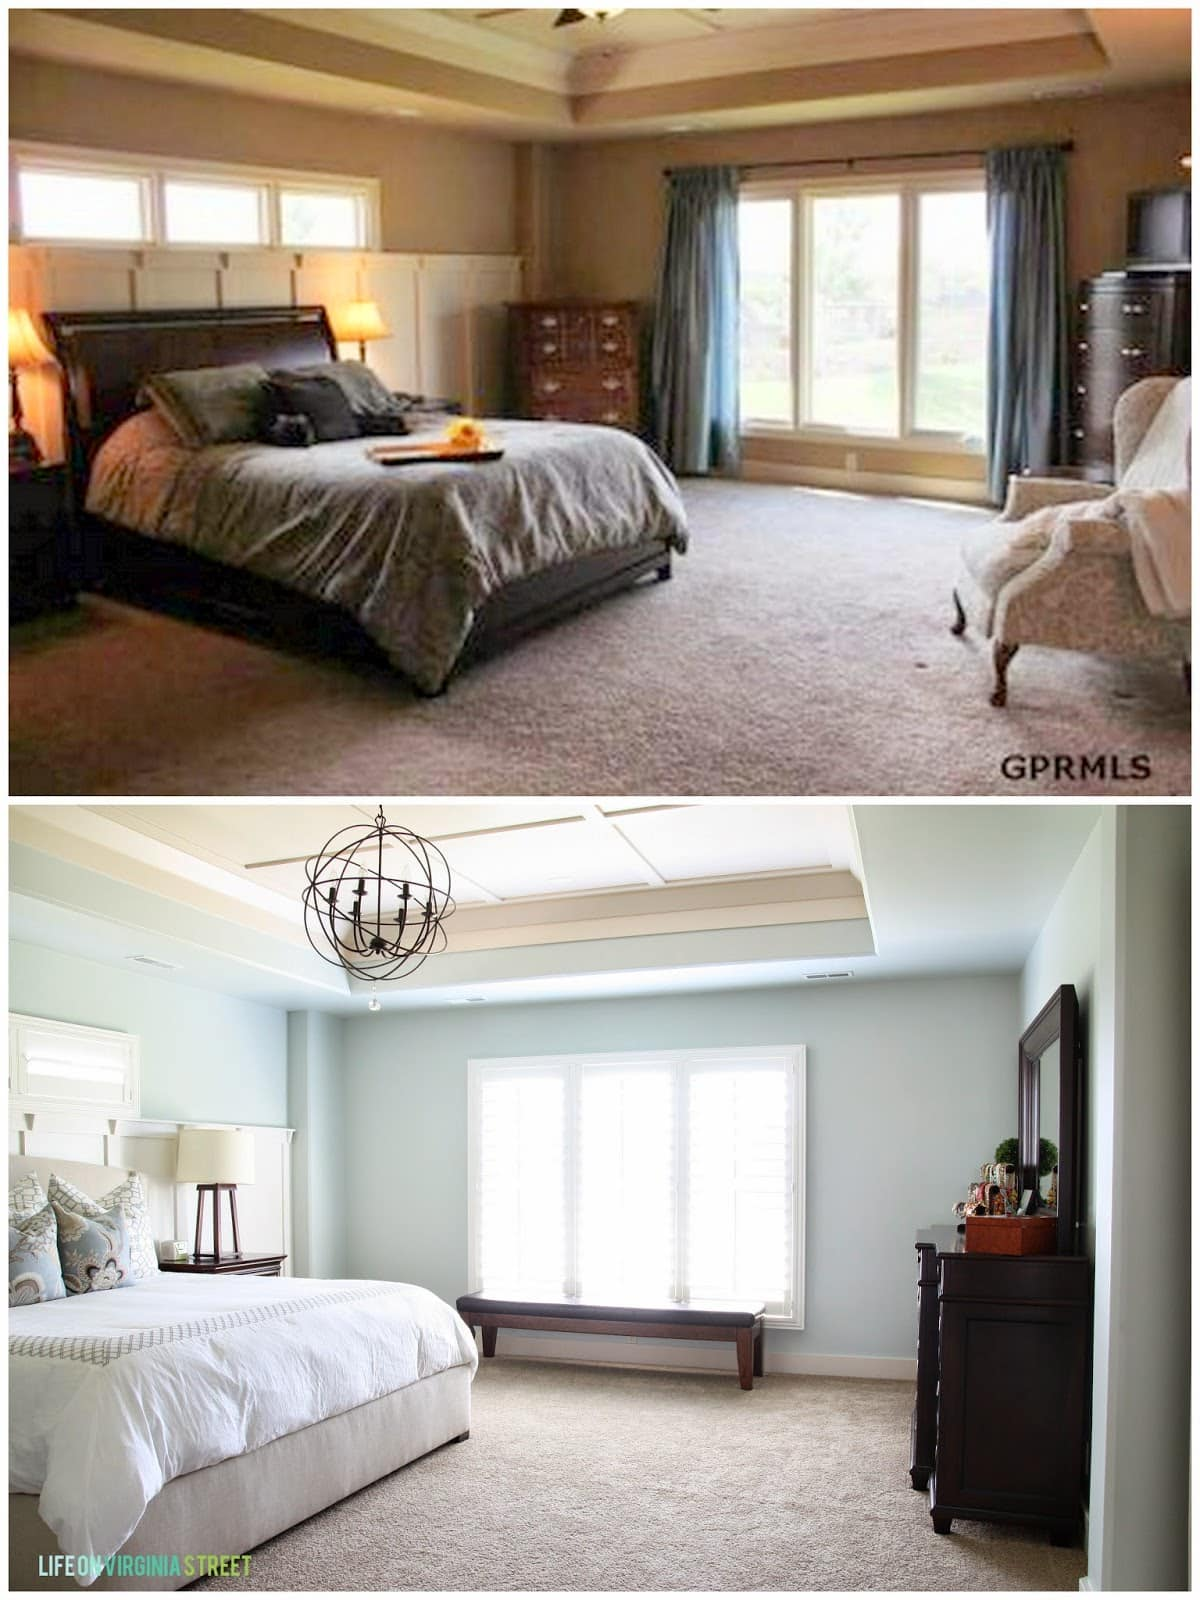 First picture of the bedroom in a yellowish tone with master bed and dressers, and the second picture with the walls painted in the sea salt and master bedroom all brightened up.